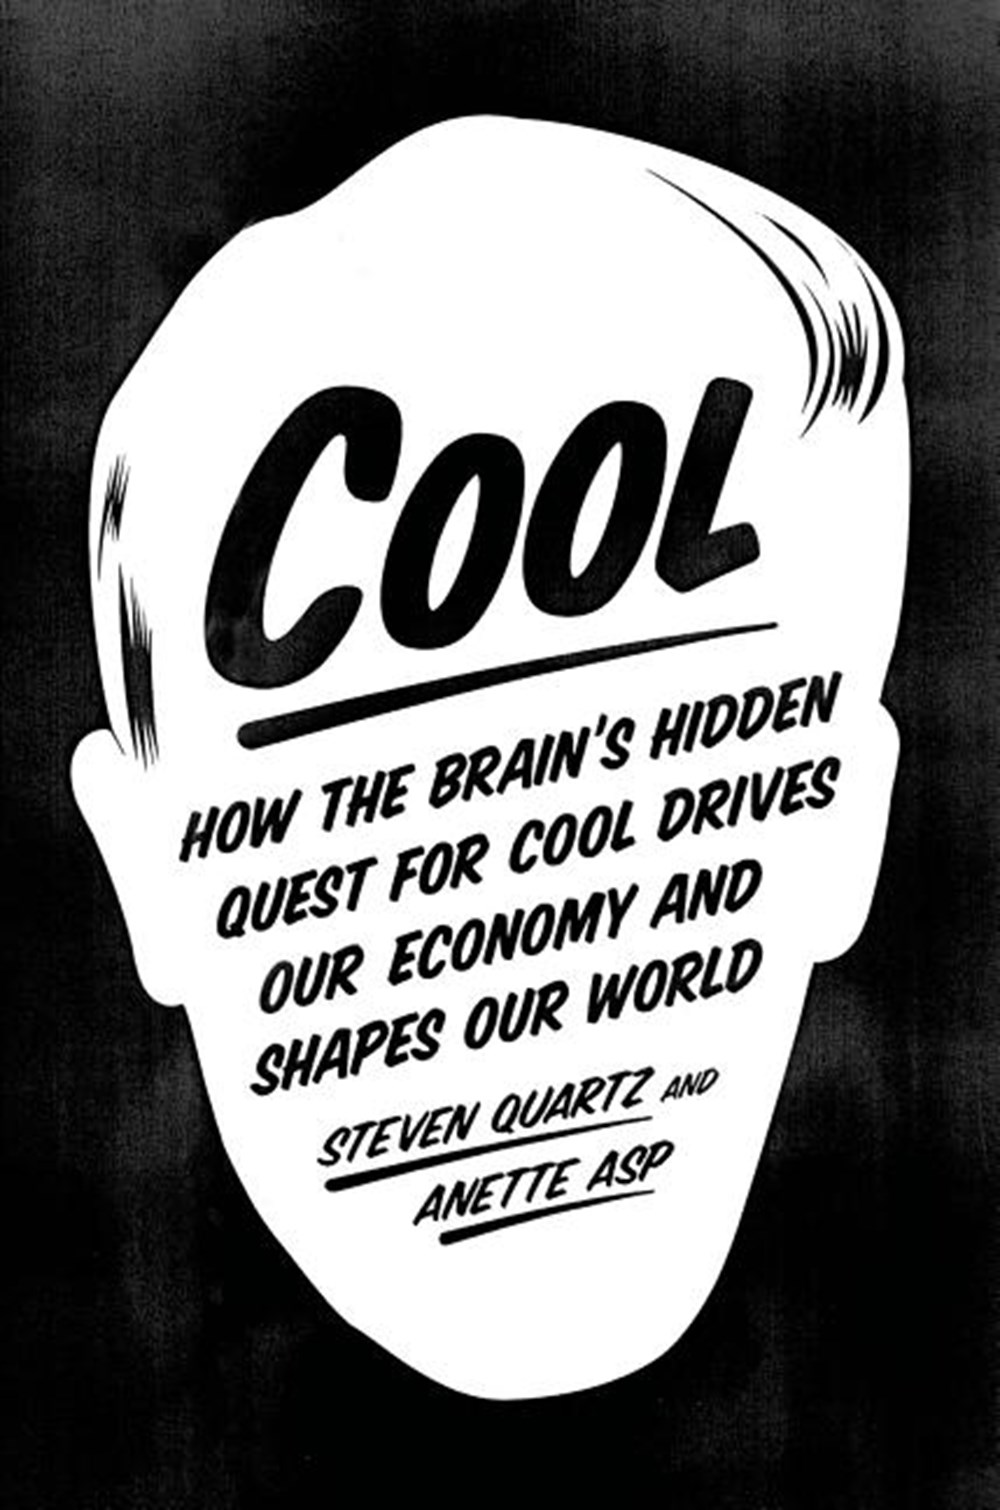 Cool How the Brain's Hidden Quest for Cool Drives Our Economy and Shapes Our World